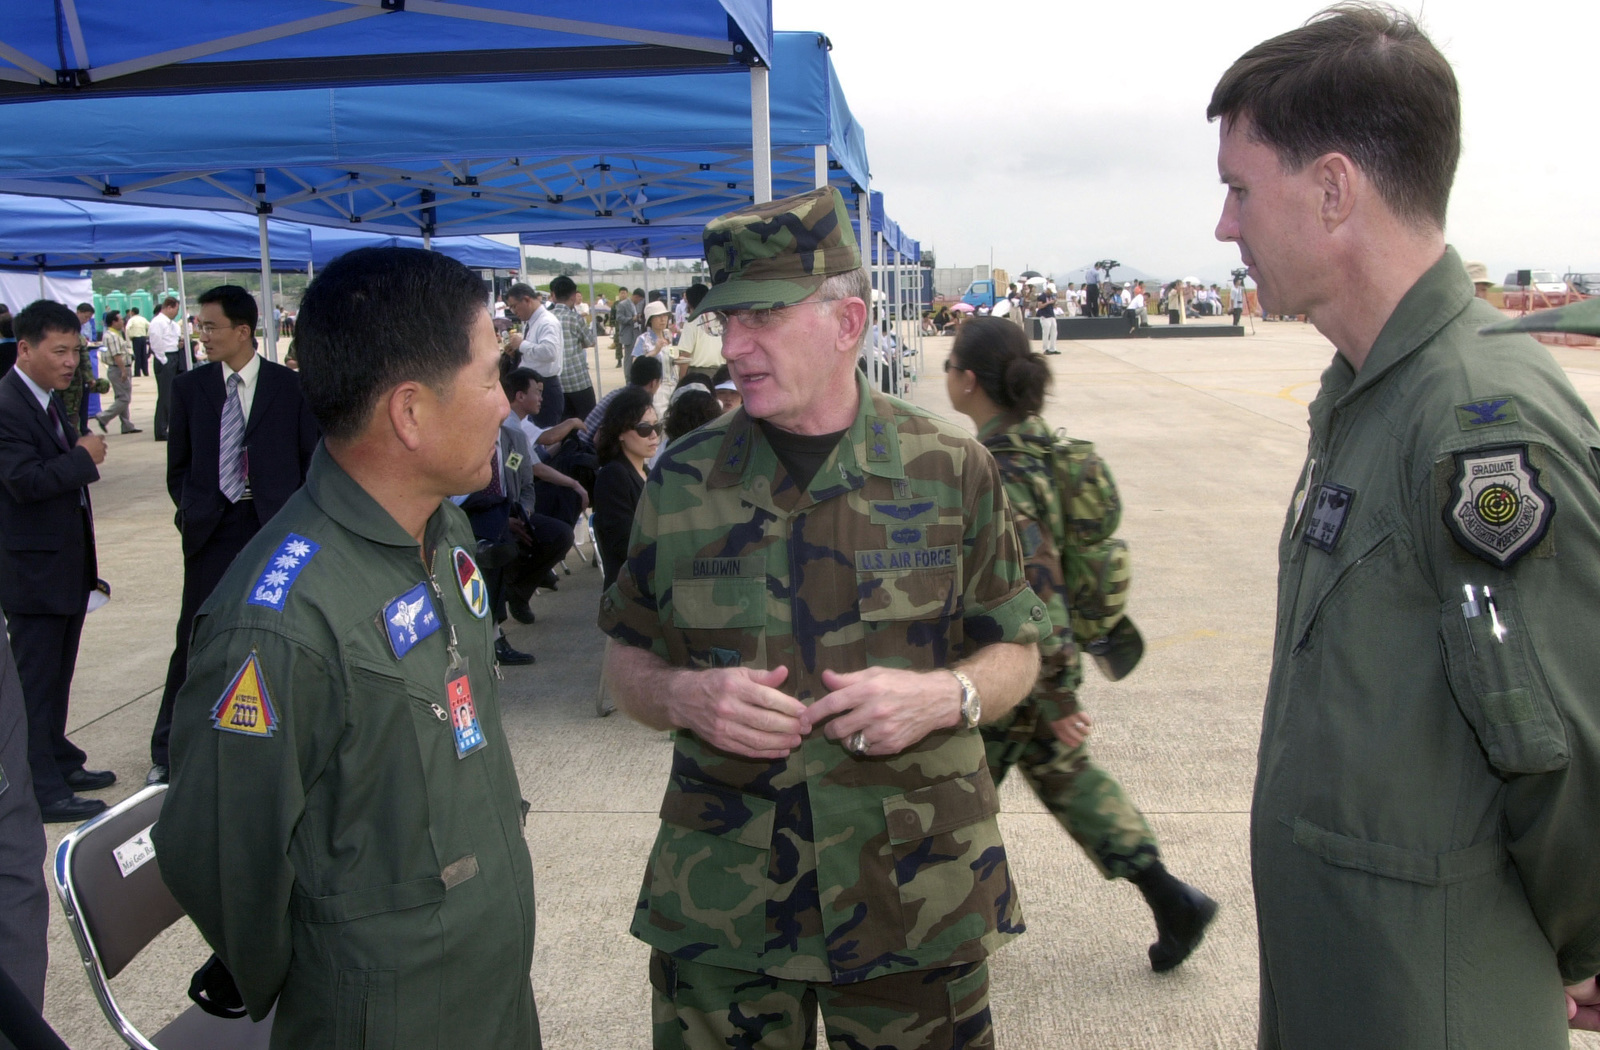 U.S. Air Force MAJ. GEN. Baldwin (center) Air Force CHIEF of Chalpains, talks with COL. Chi (left), Commander of the South Korean Air Forces, during the Kunsan Air Show at Kunsan Air Base, Republic of Korea, on Sept. 17, 2004.(U.S Air Force PHOTO by STAFF SGT. Alan W. Port) (RELEASED)